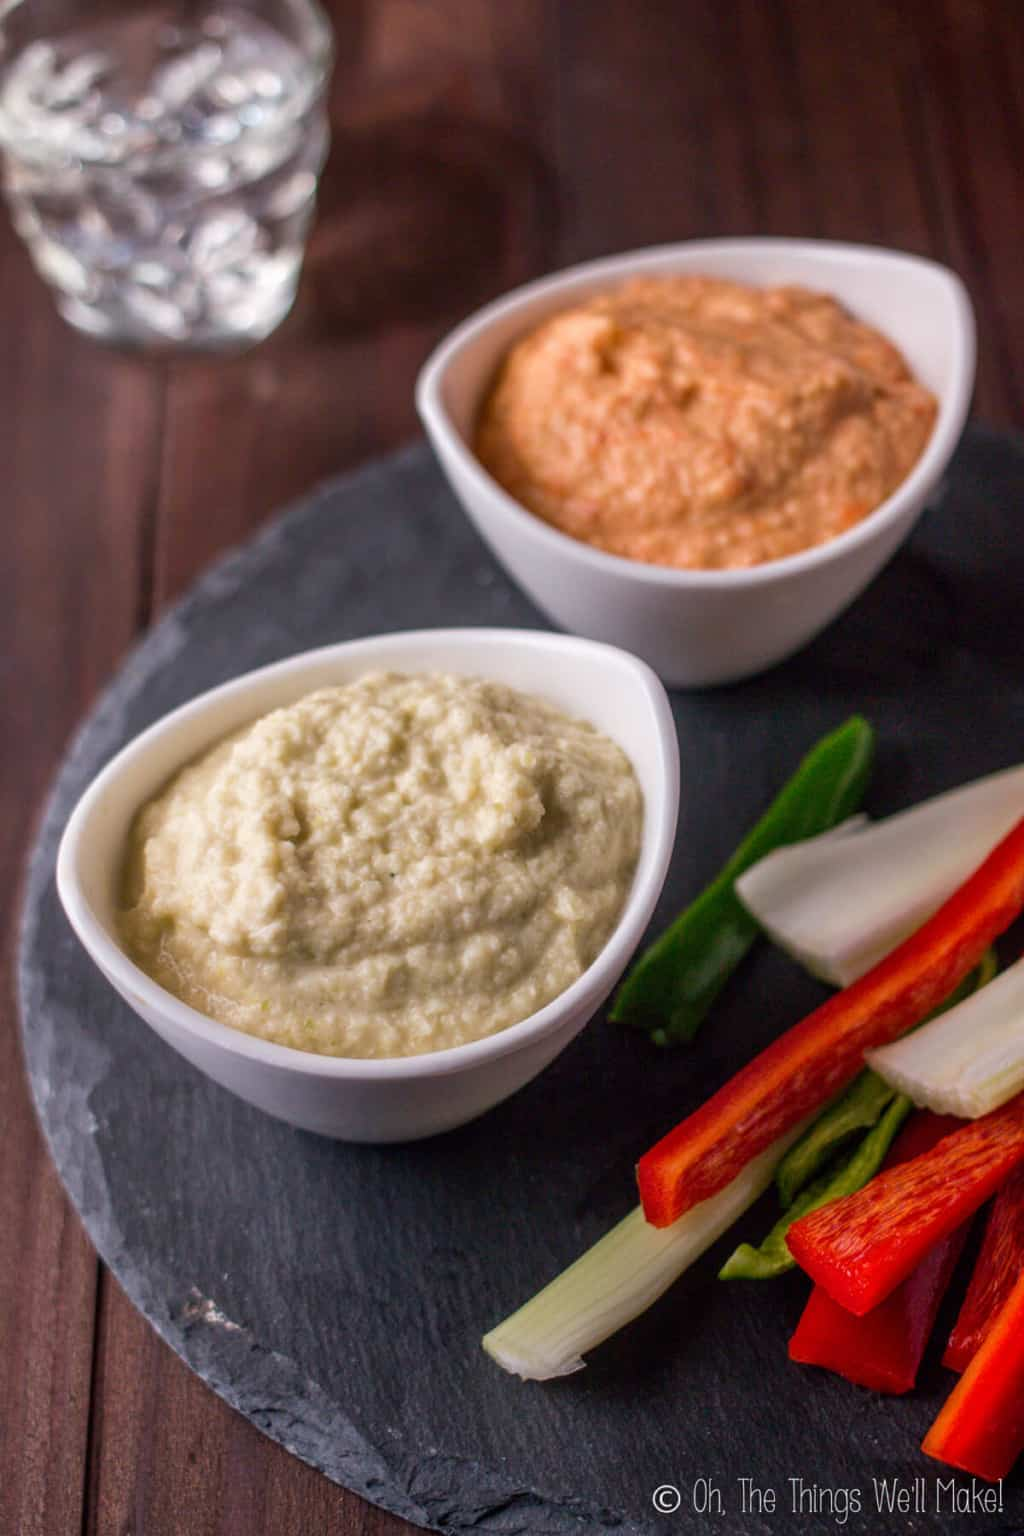 Two bowls of zucchini hummus on a black slate platter with cut veggies. Bottom bowl is filled with plain zucchini hummus while the bowl on top is orange zucchini hummus flavored with roasted red peppers.